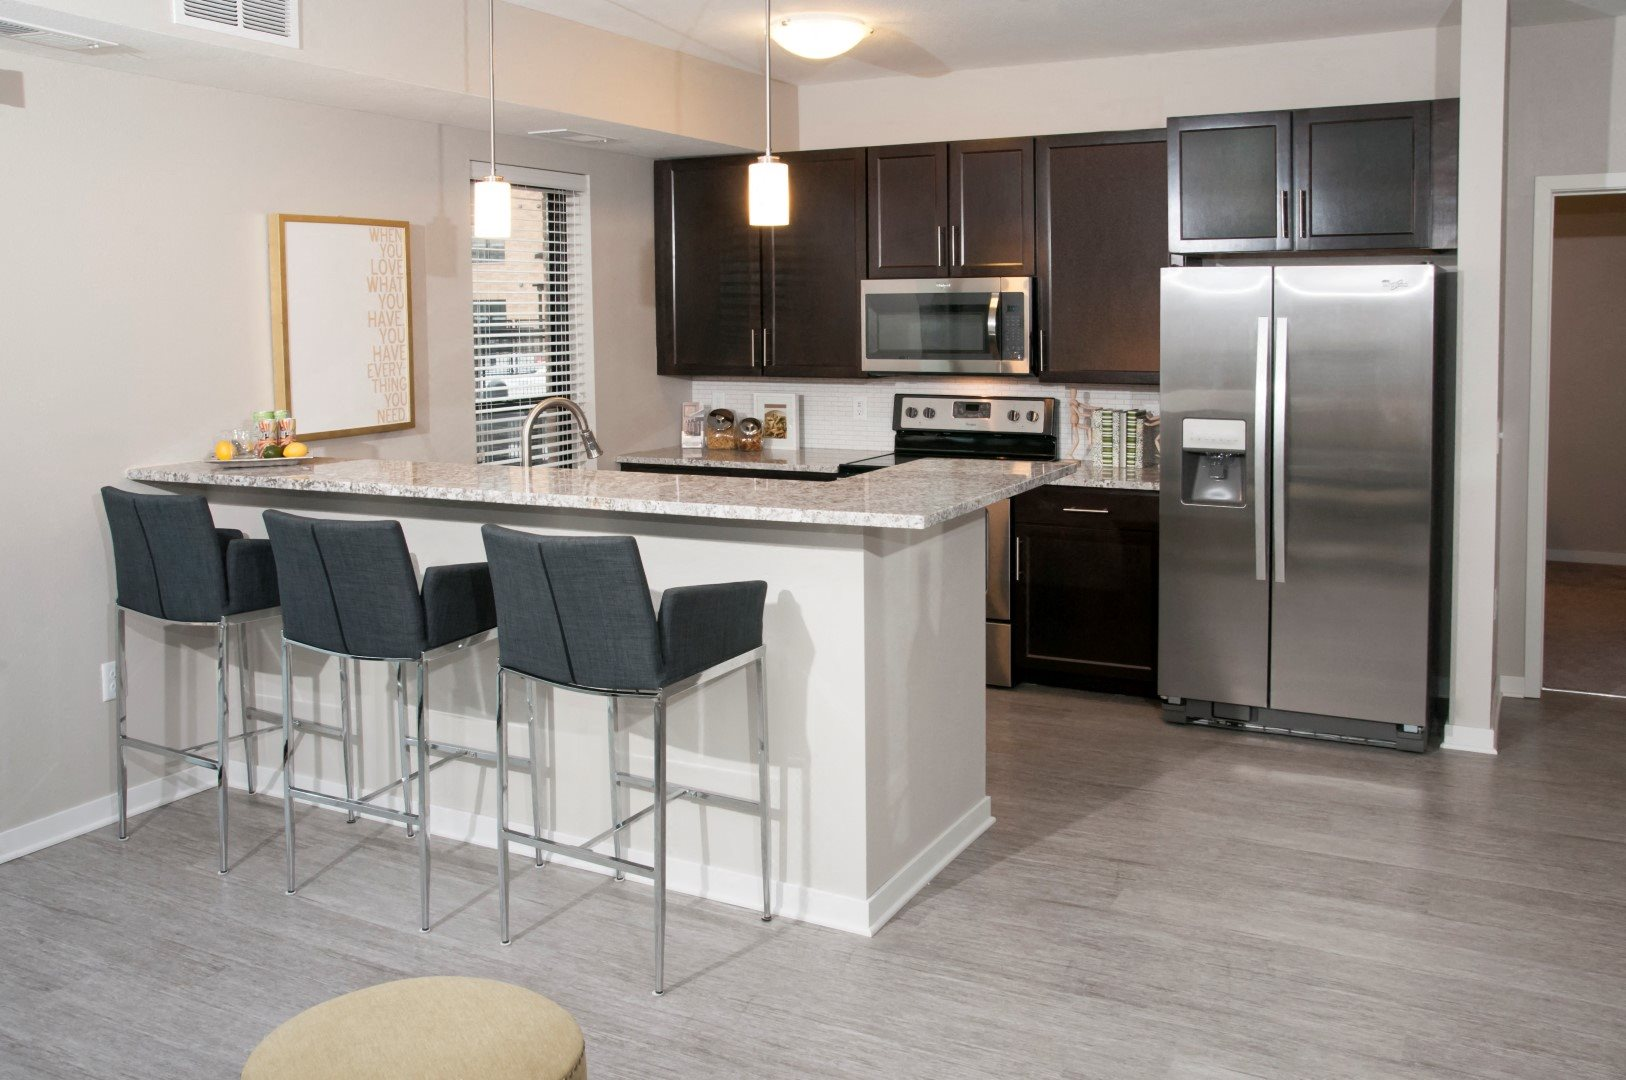 The Axis Renovated Apartments with Separate Kitchens: Gas Ranges, Microwaves, Dishwashers and Garbage Disposals